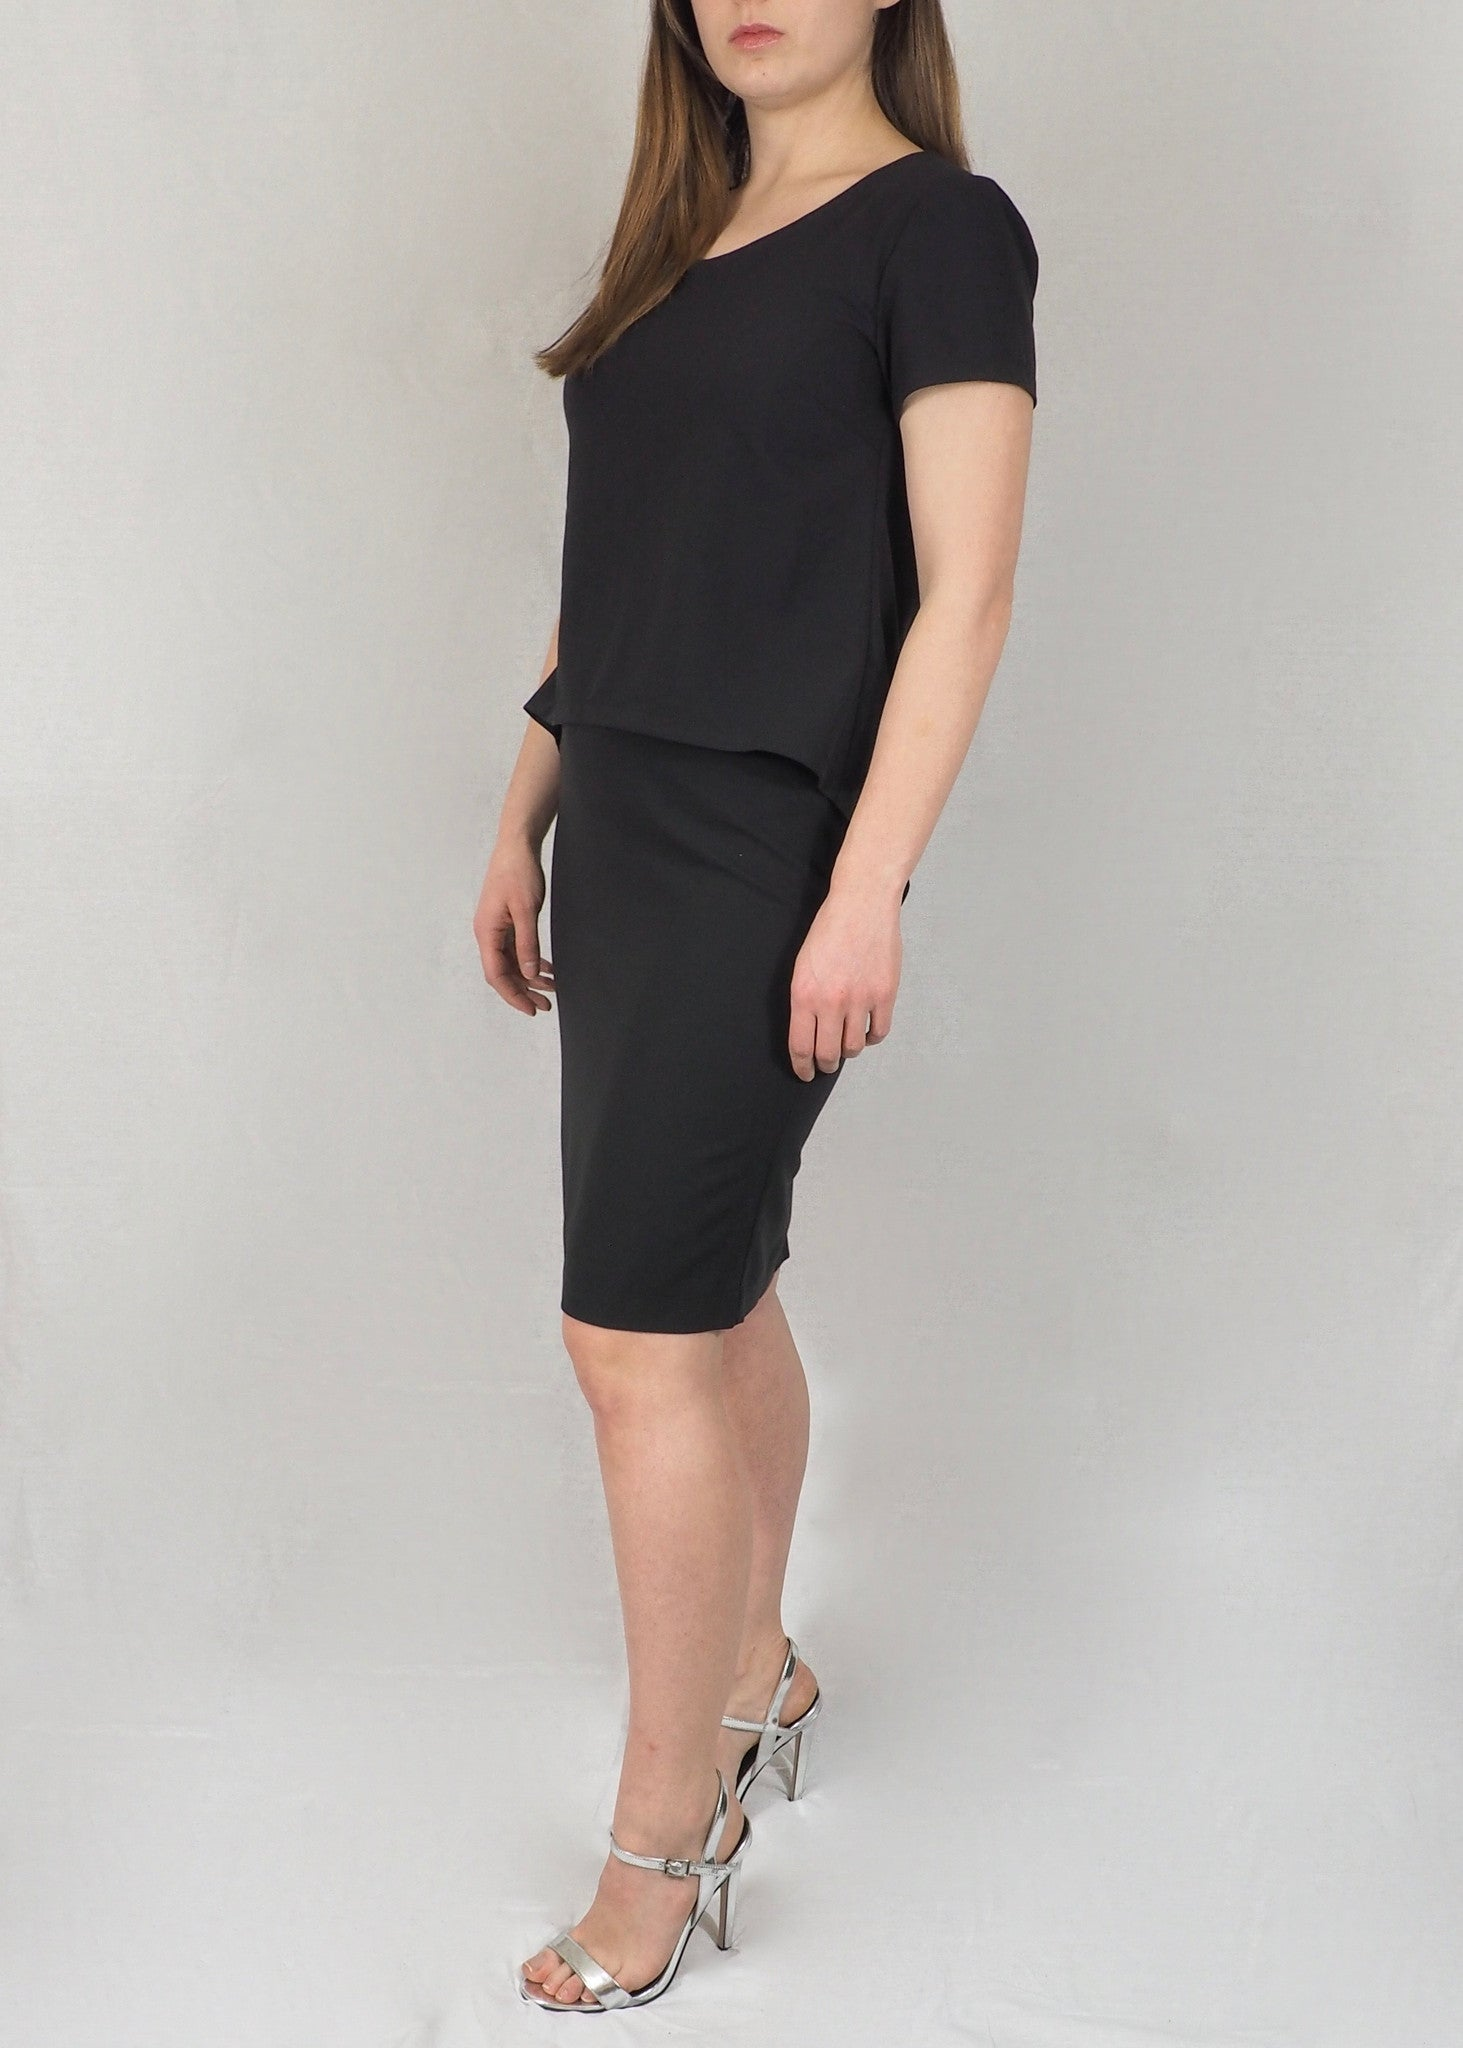 Split-Back Breastfeeding Dress - Black